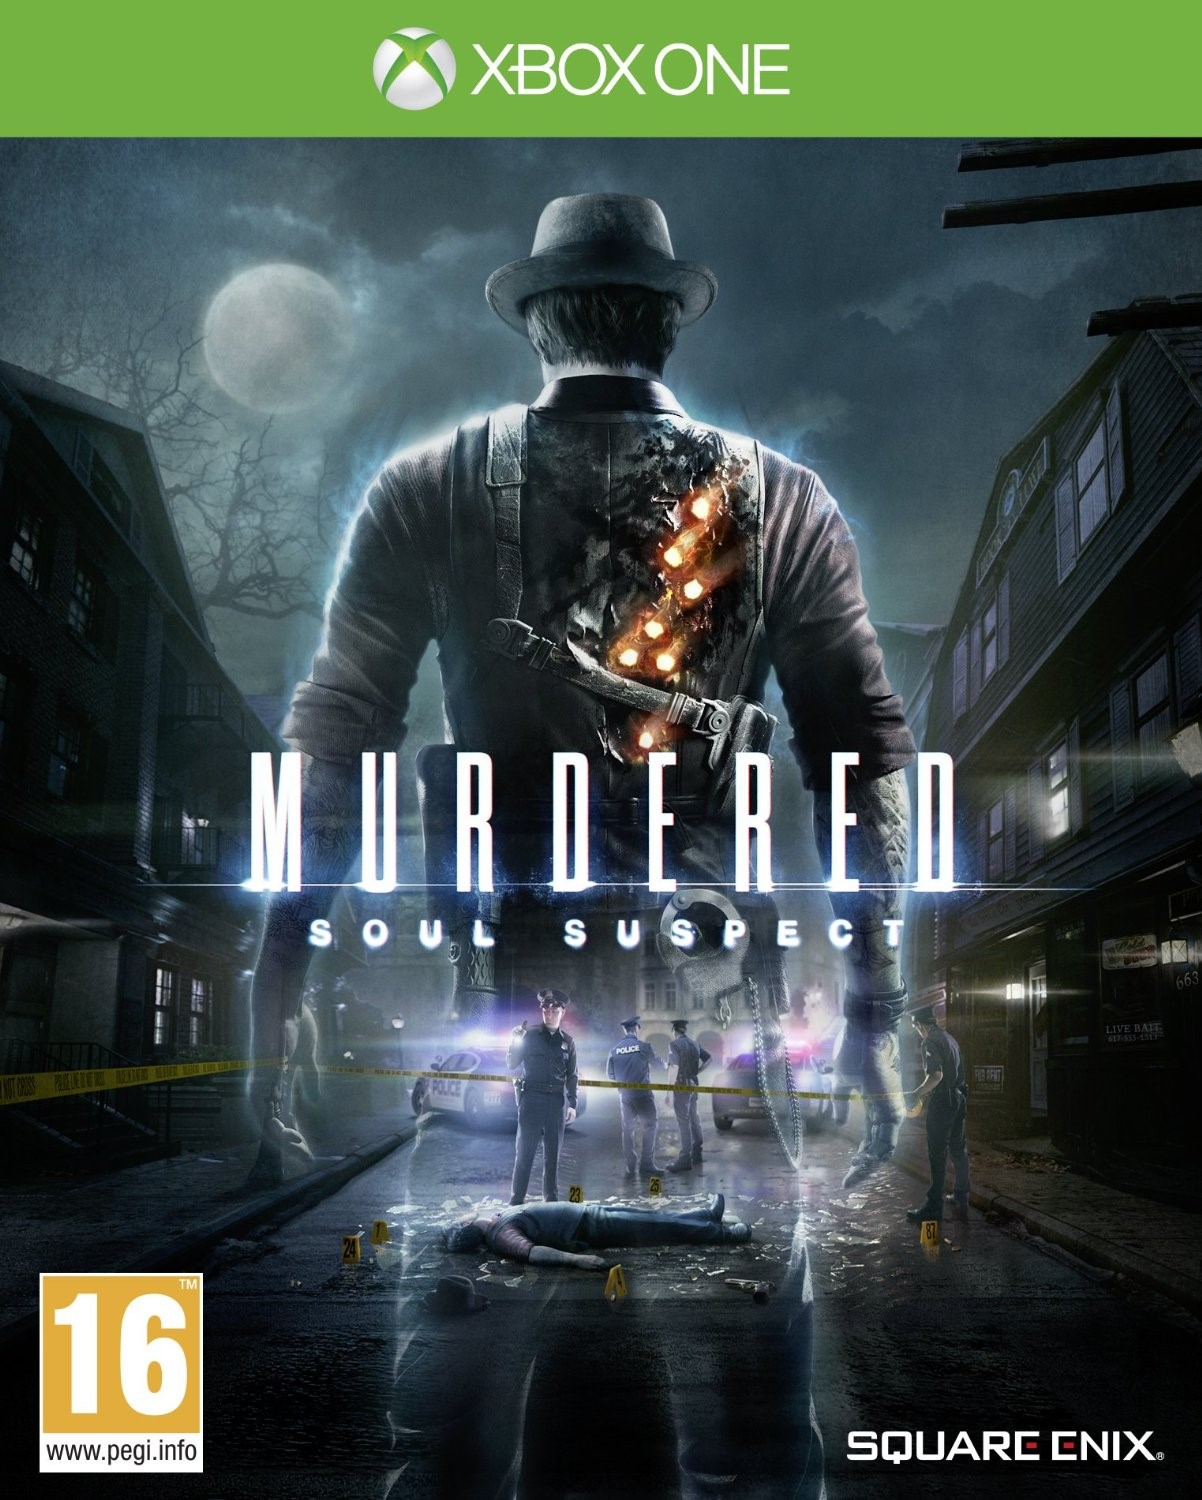 MICROSOFT Microsoft XBOX One Game MURDERED SOUL SUSPECT XBOX ONE